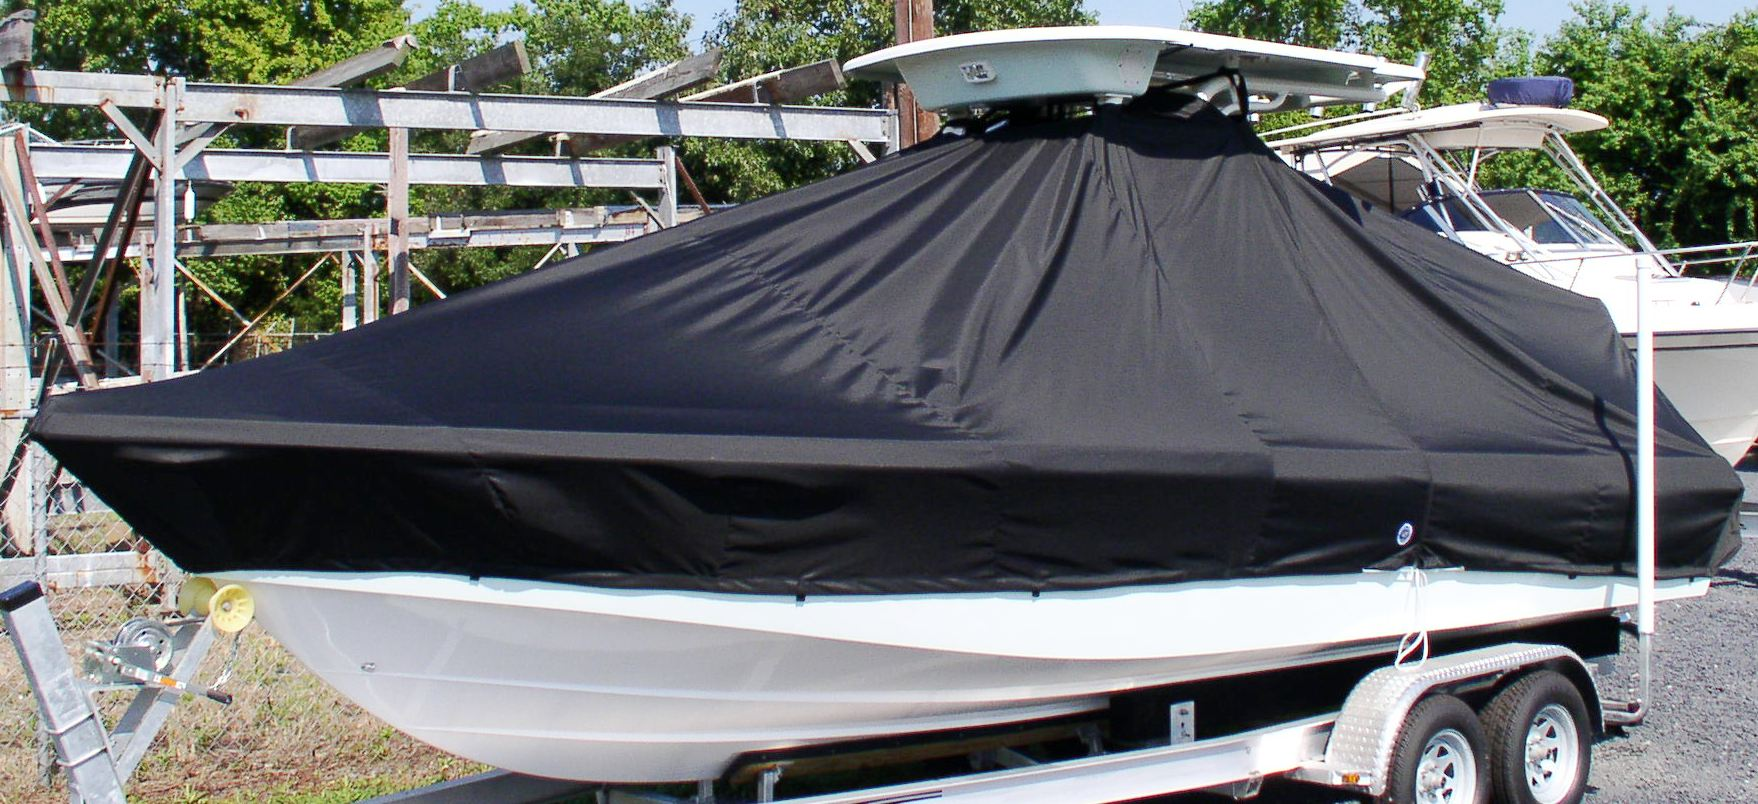 Everglades 243CC, 20xx, TTopCovers™ T-Top boat cover Black, port front